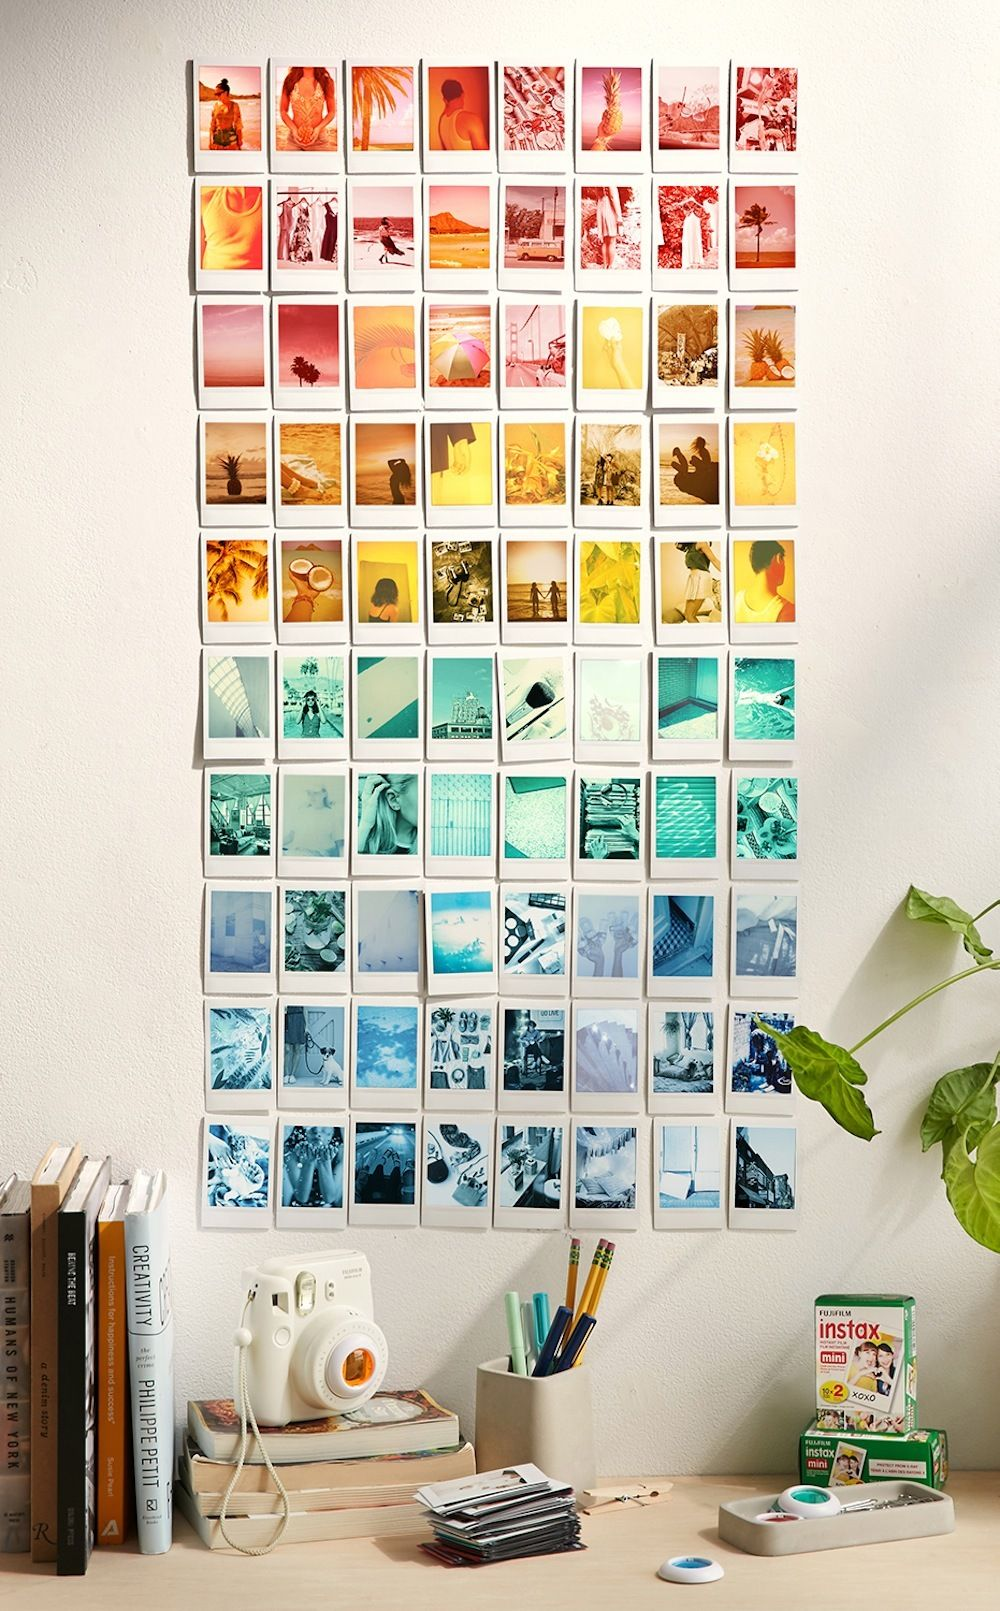 10 Awesome Diy Large Scale Wall Art Ideas Large Scale Wall Art Diy Large Wall Art Wall Collage